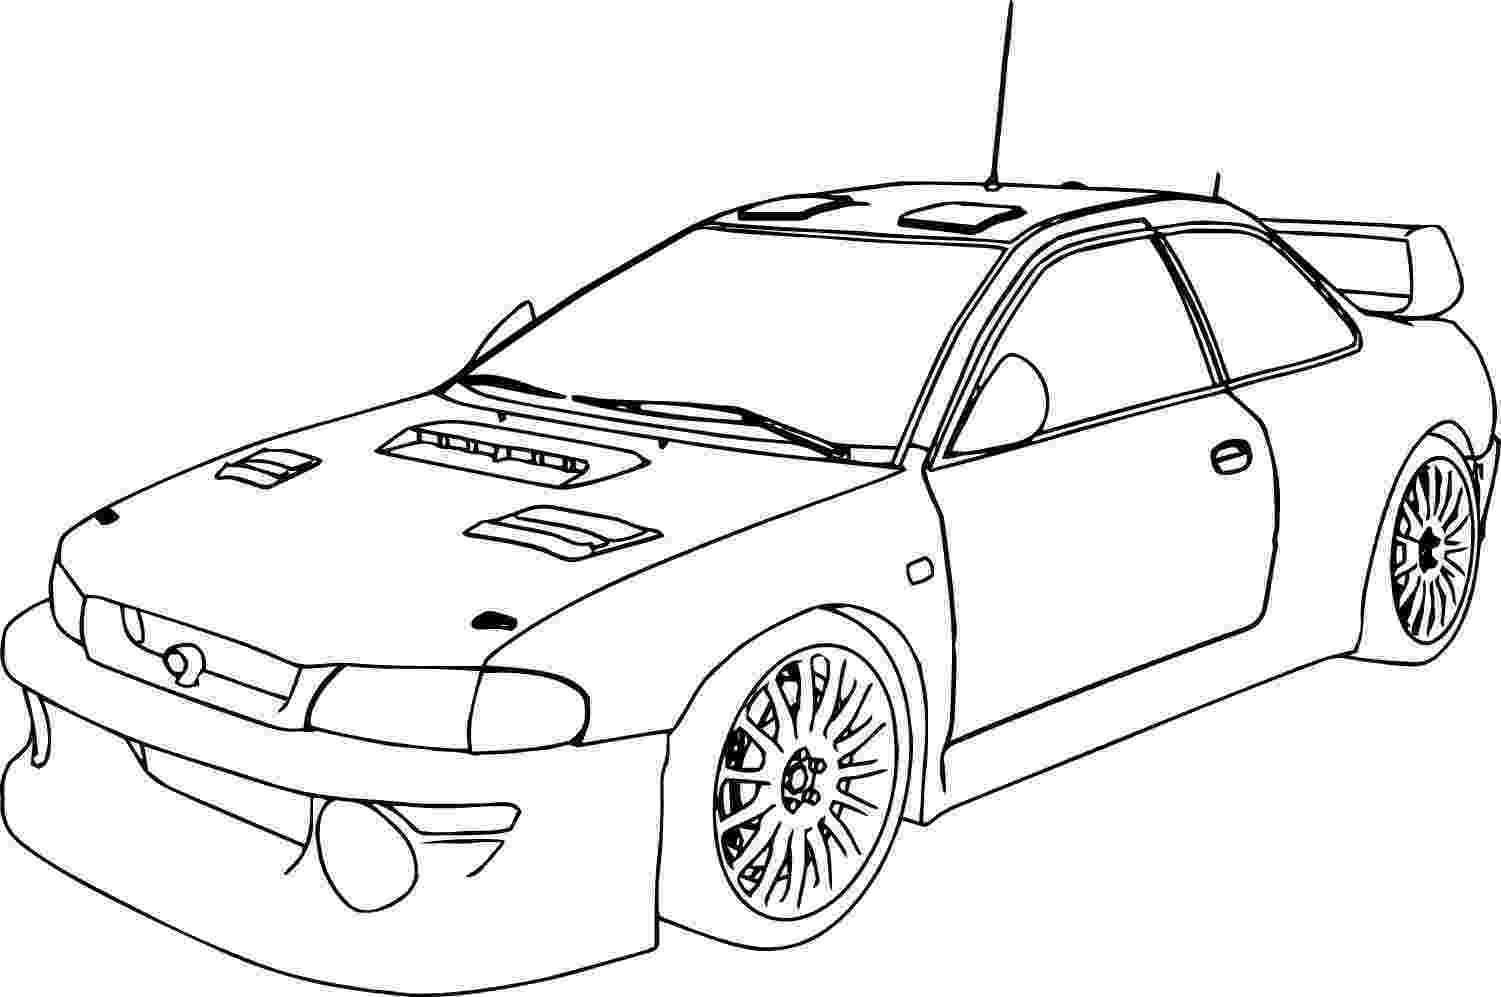 car coloring pictures muscle car coloring pages to download and print for free coloring car pictures